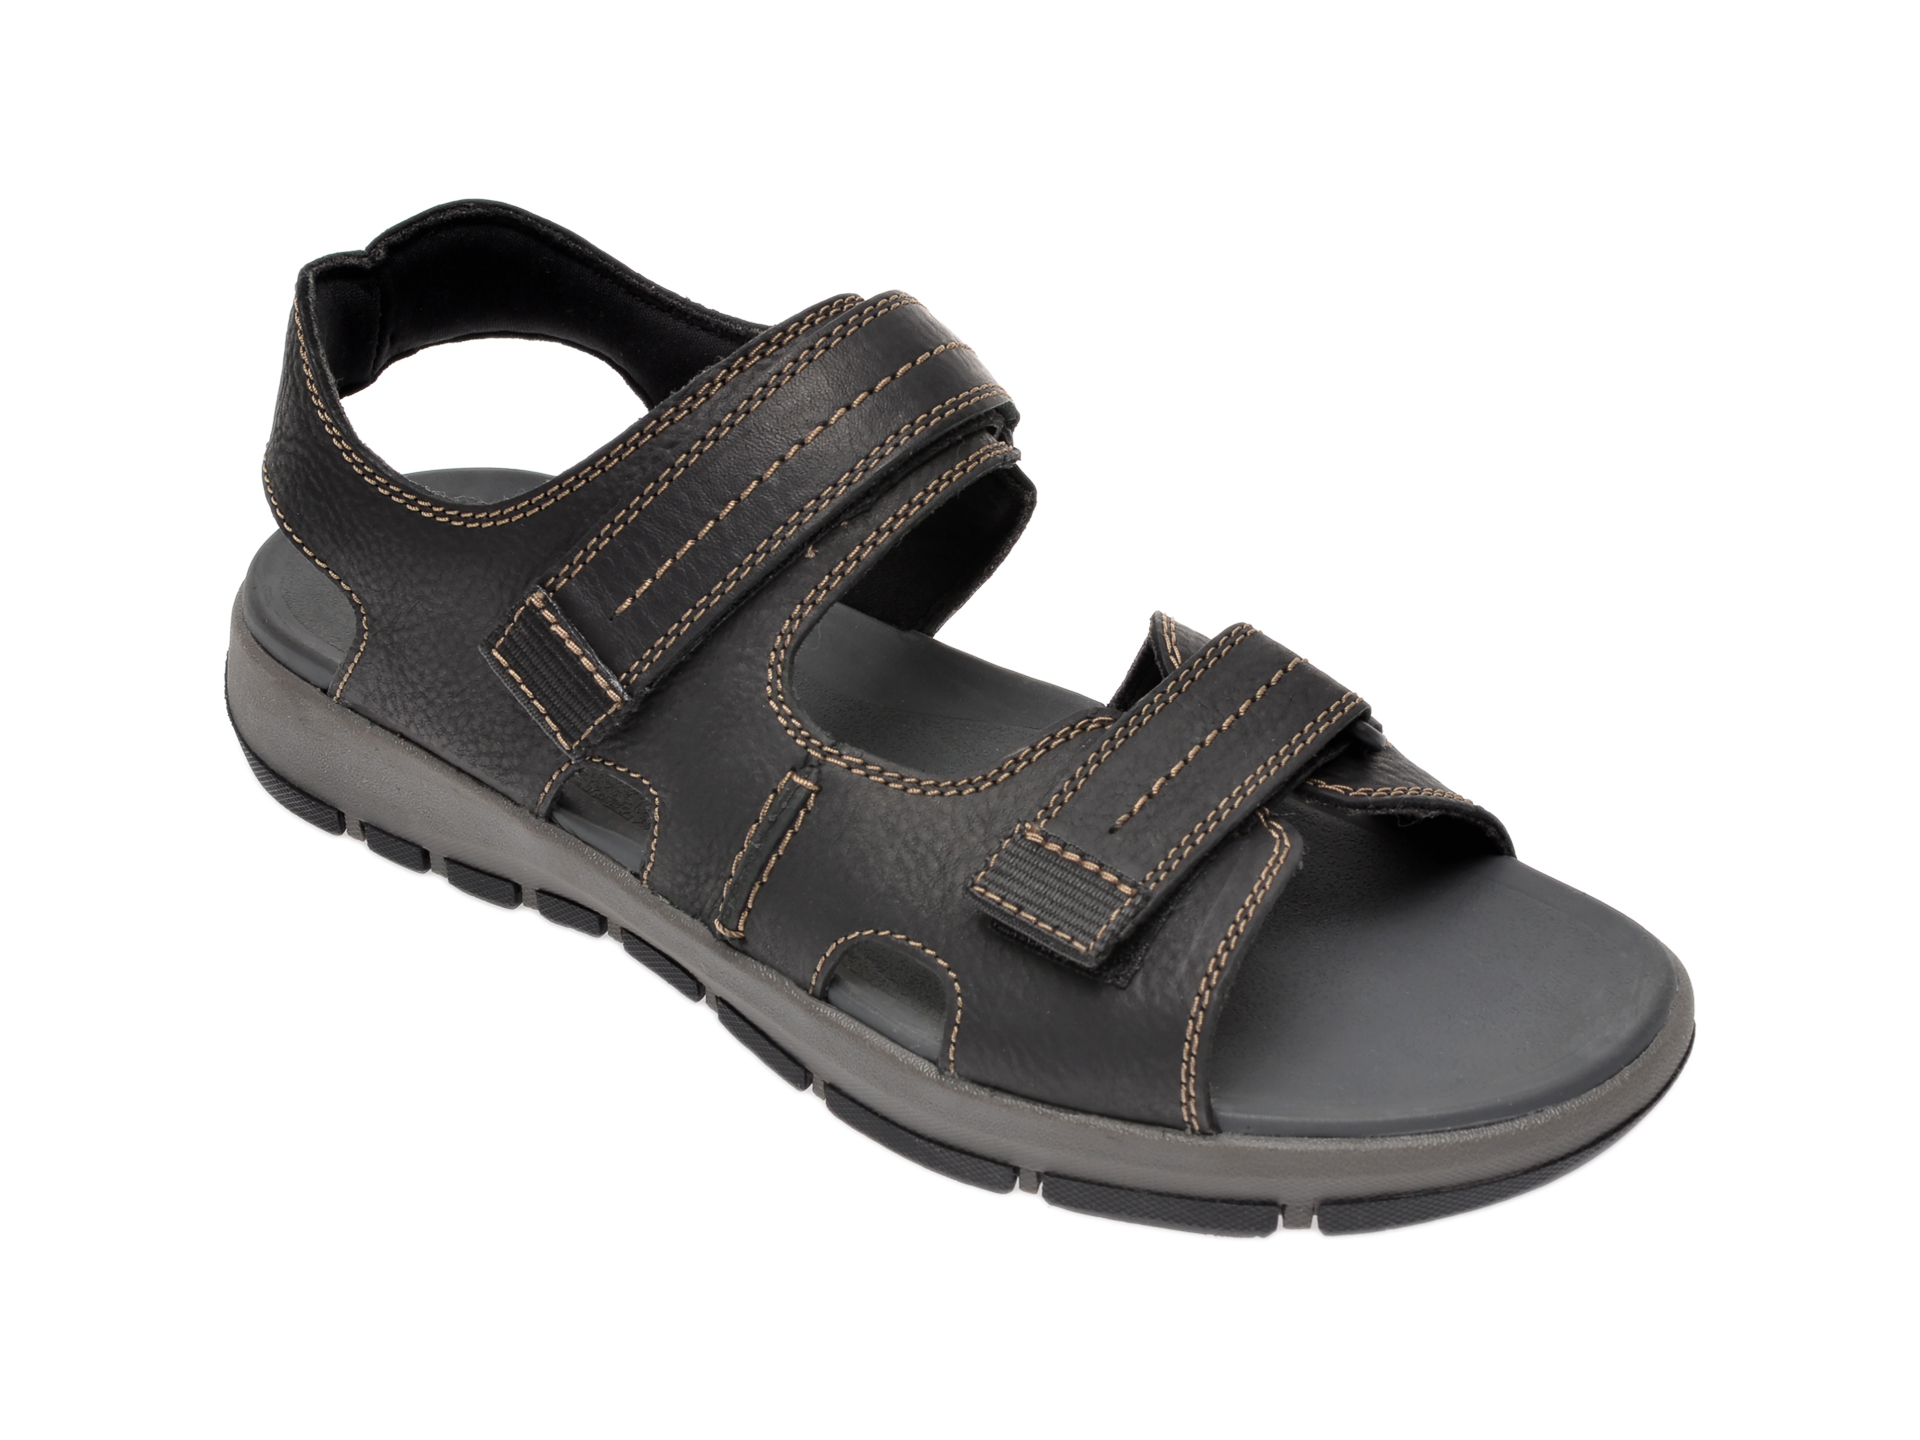 Sandale CLARKS negre, Brixby Shore, din piele naturala imagine